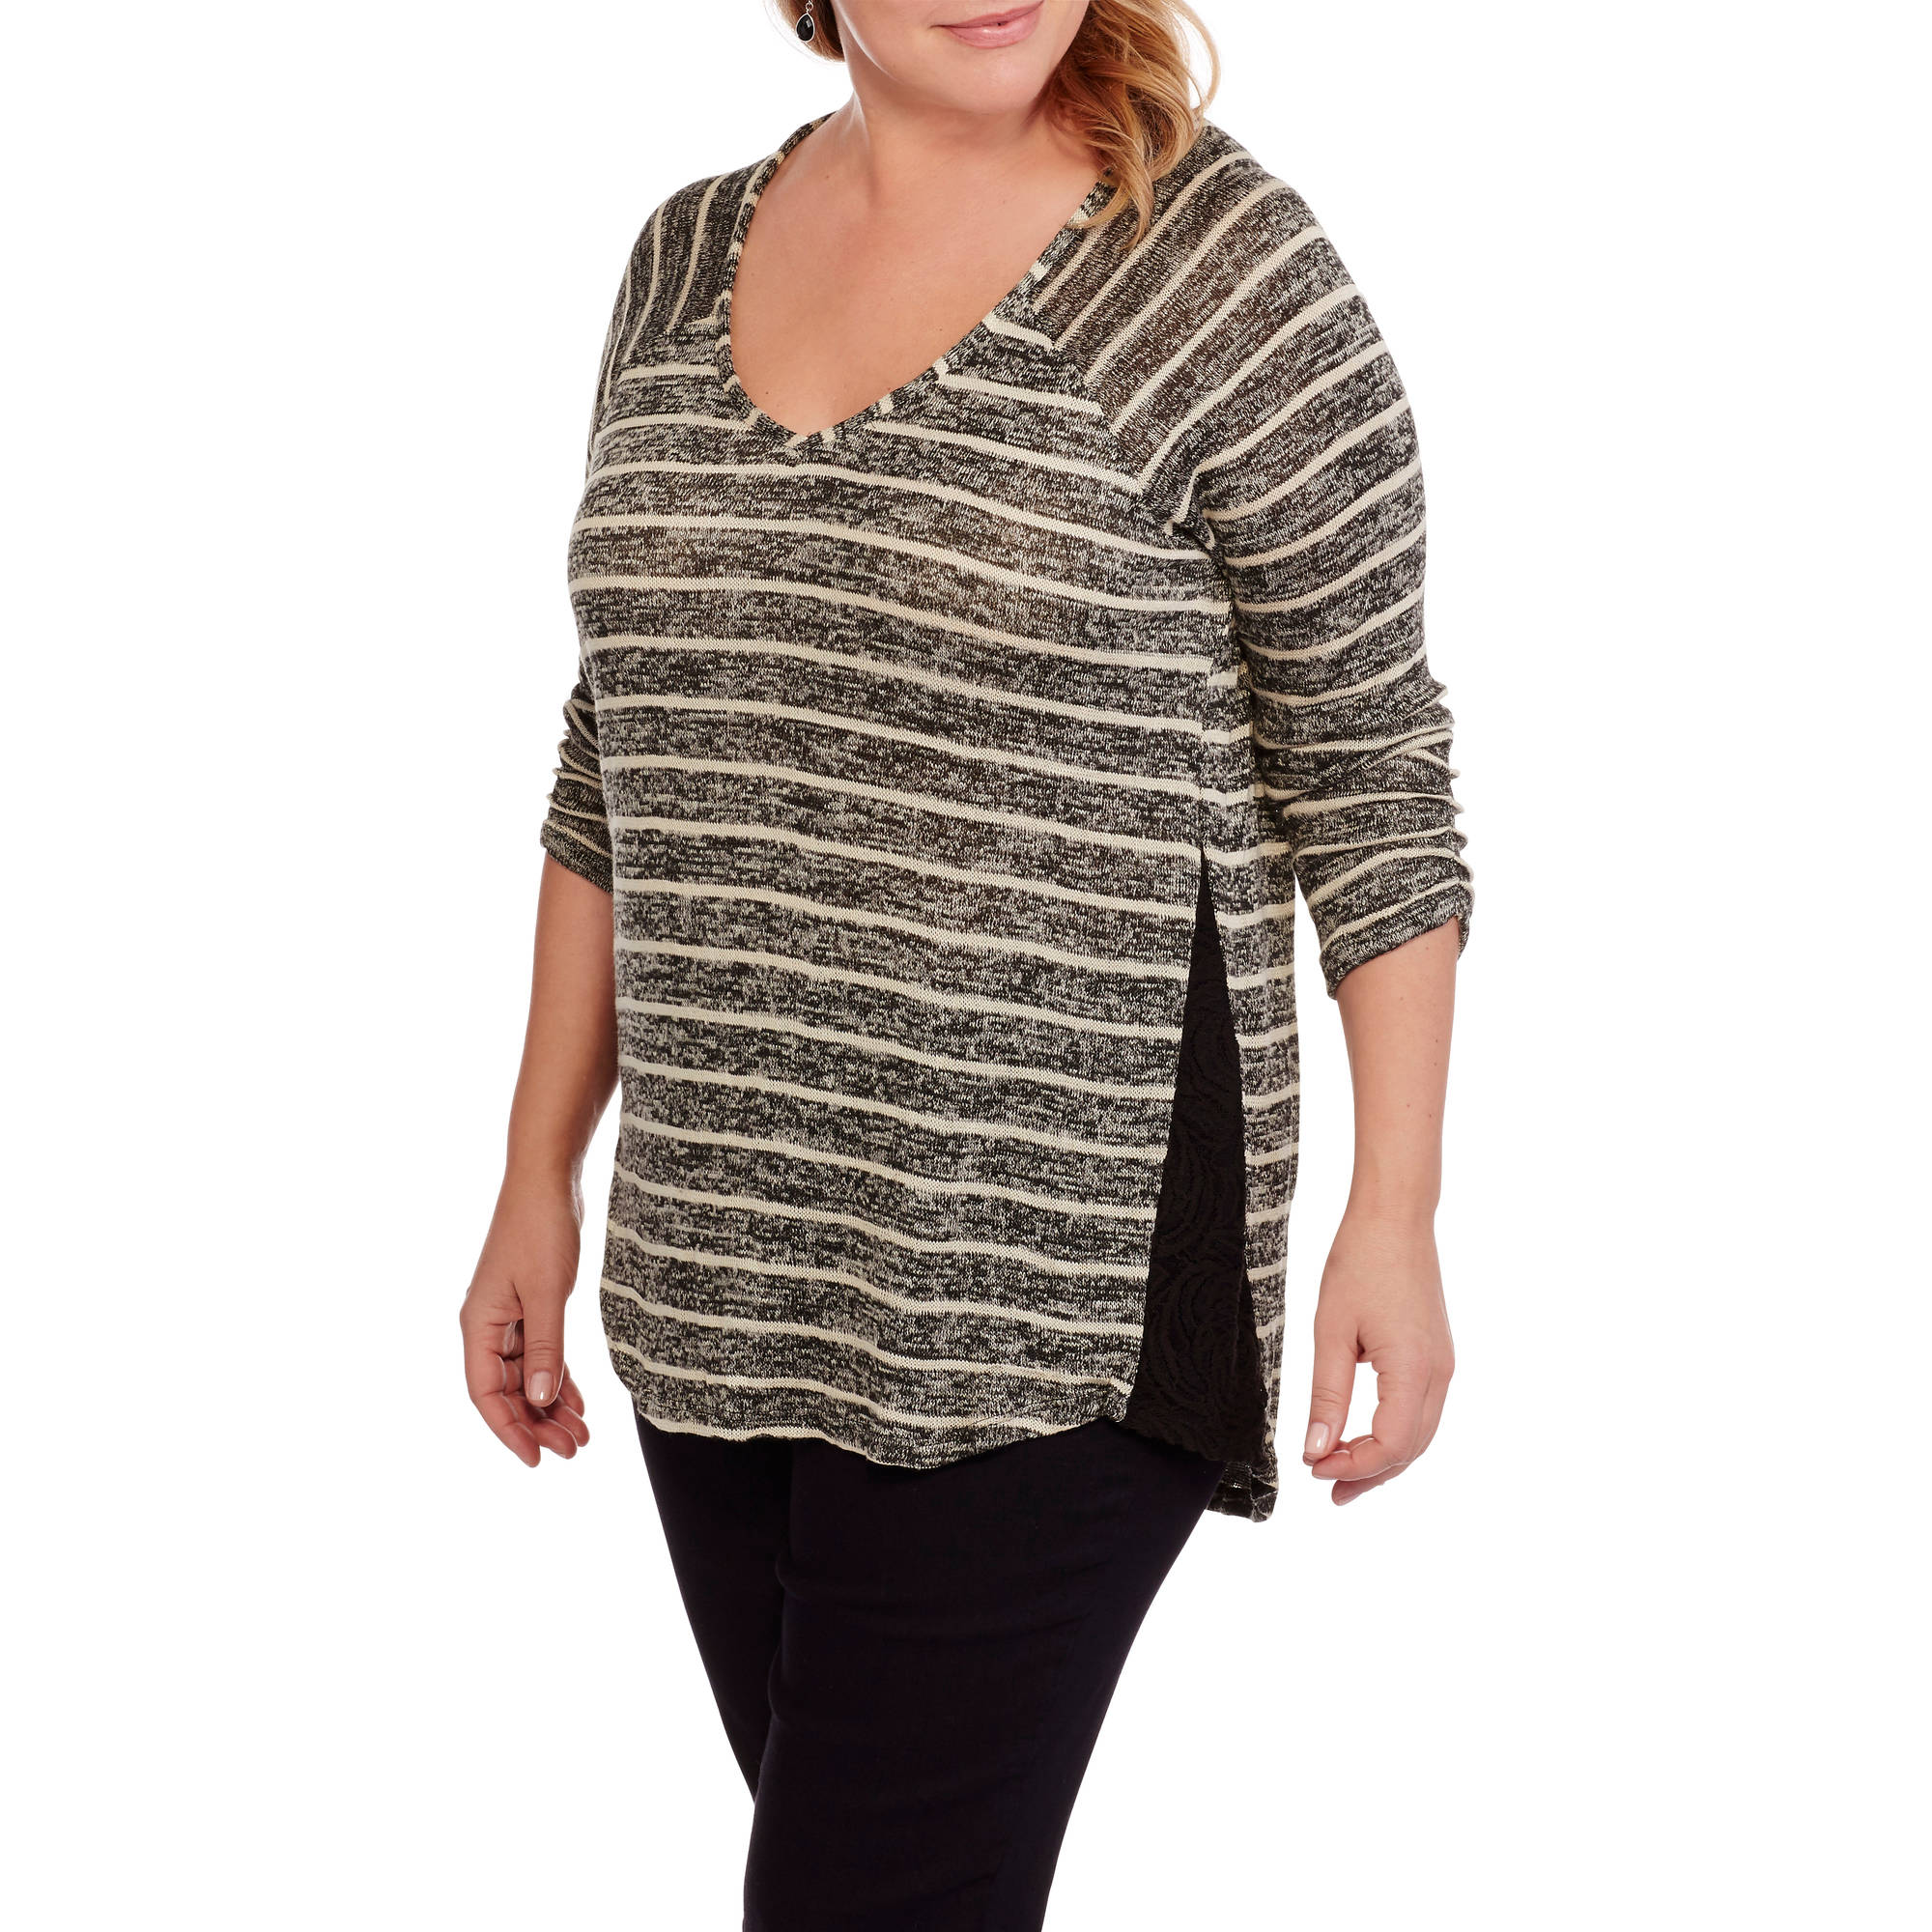 French Laundry Women's Plus Vneck Marled Ribbed Tunic with Side Seam Lace